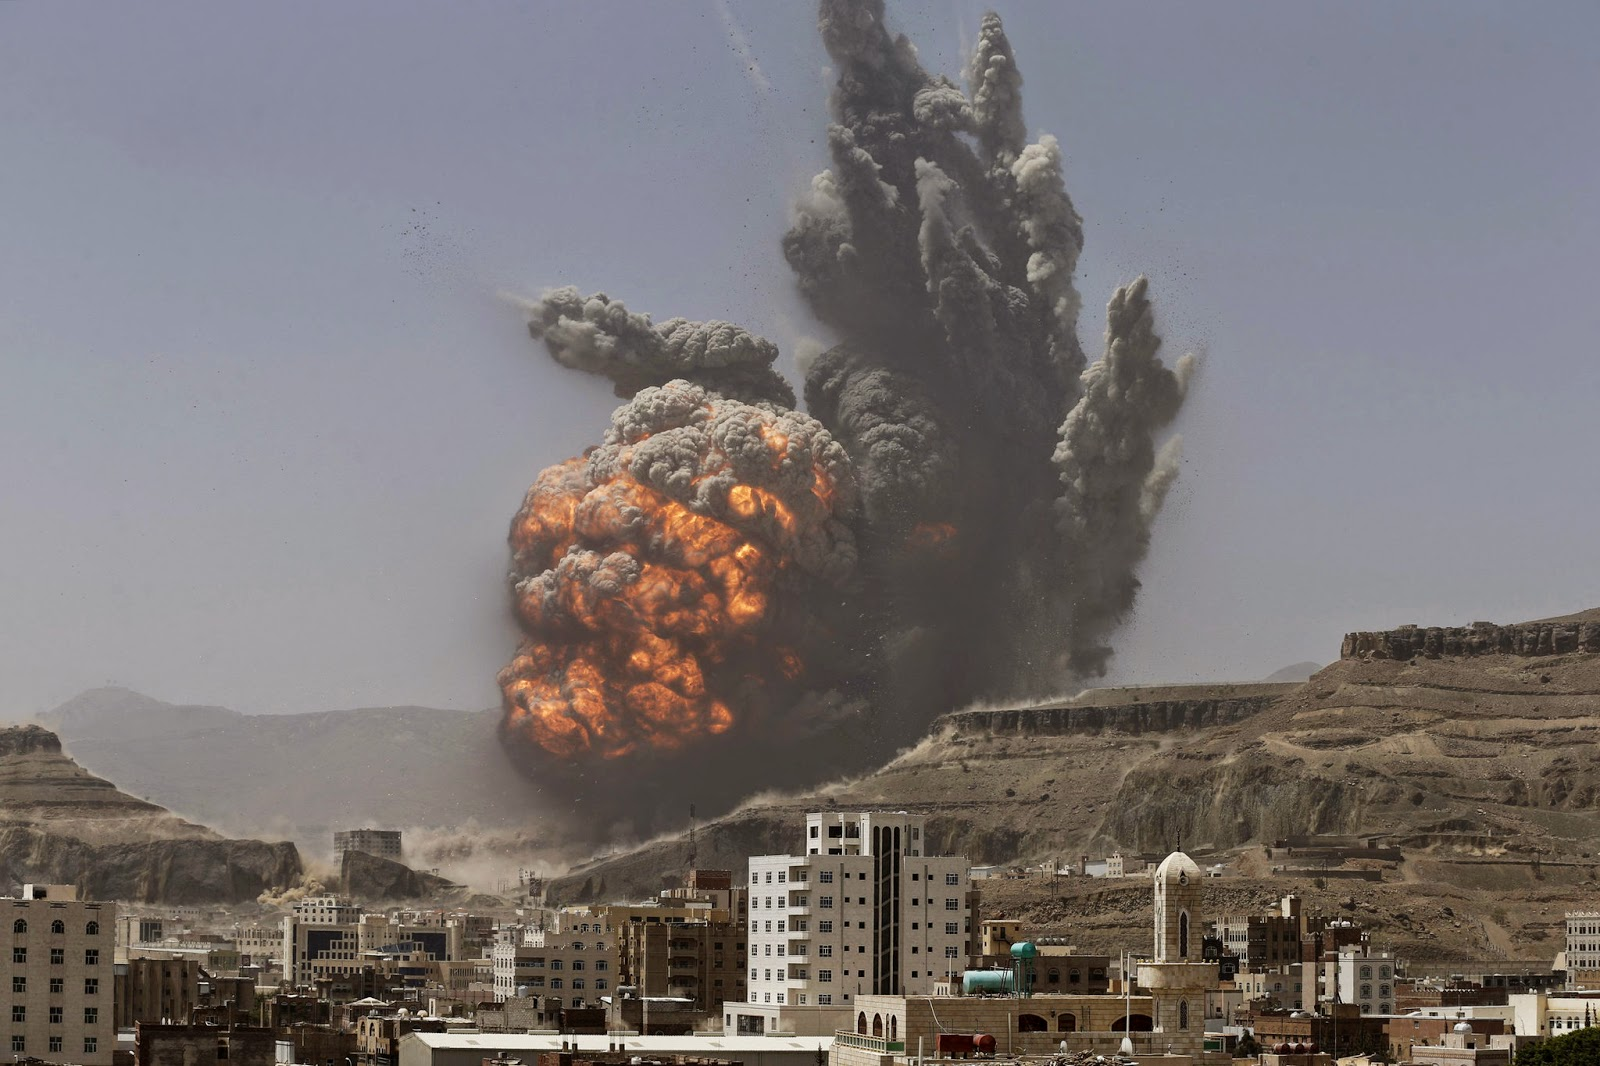 An air strike on a Scud missile base in the Houthi-controlled Yemeni  capital Sanaa triggered a big explosion that killed 25 people and wounded  almost 400 on ...